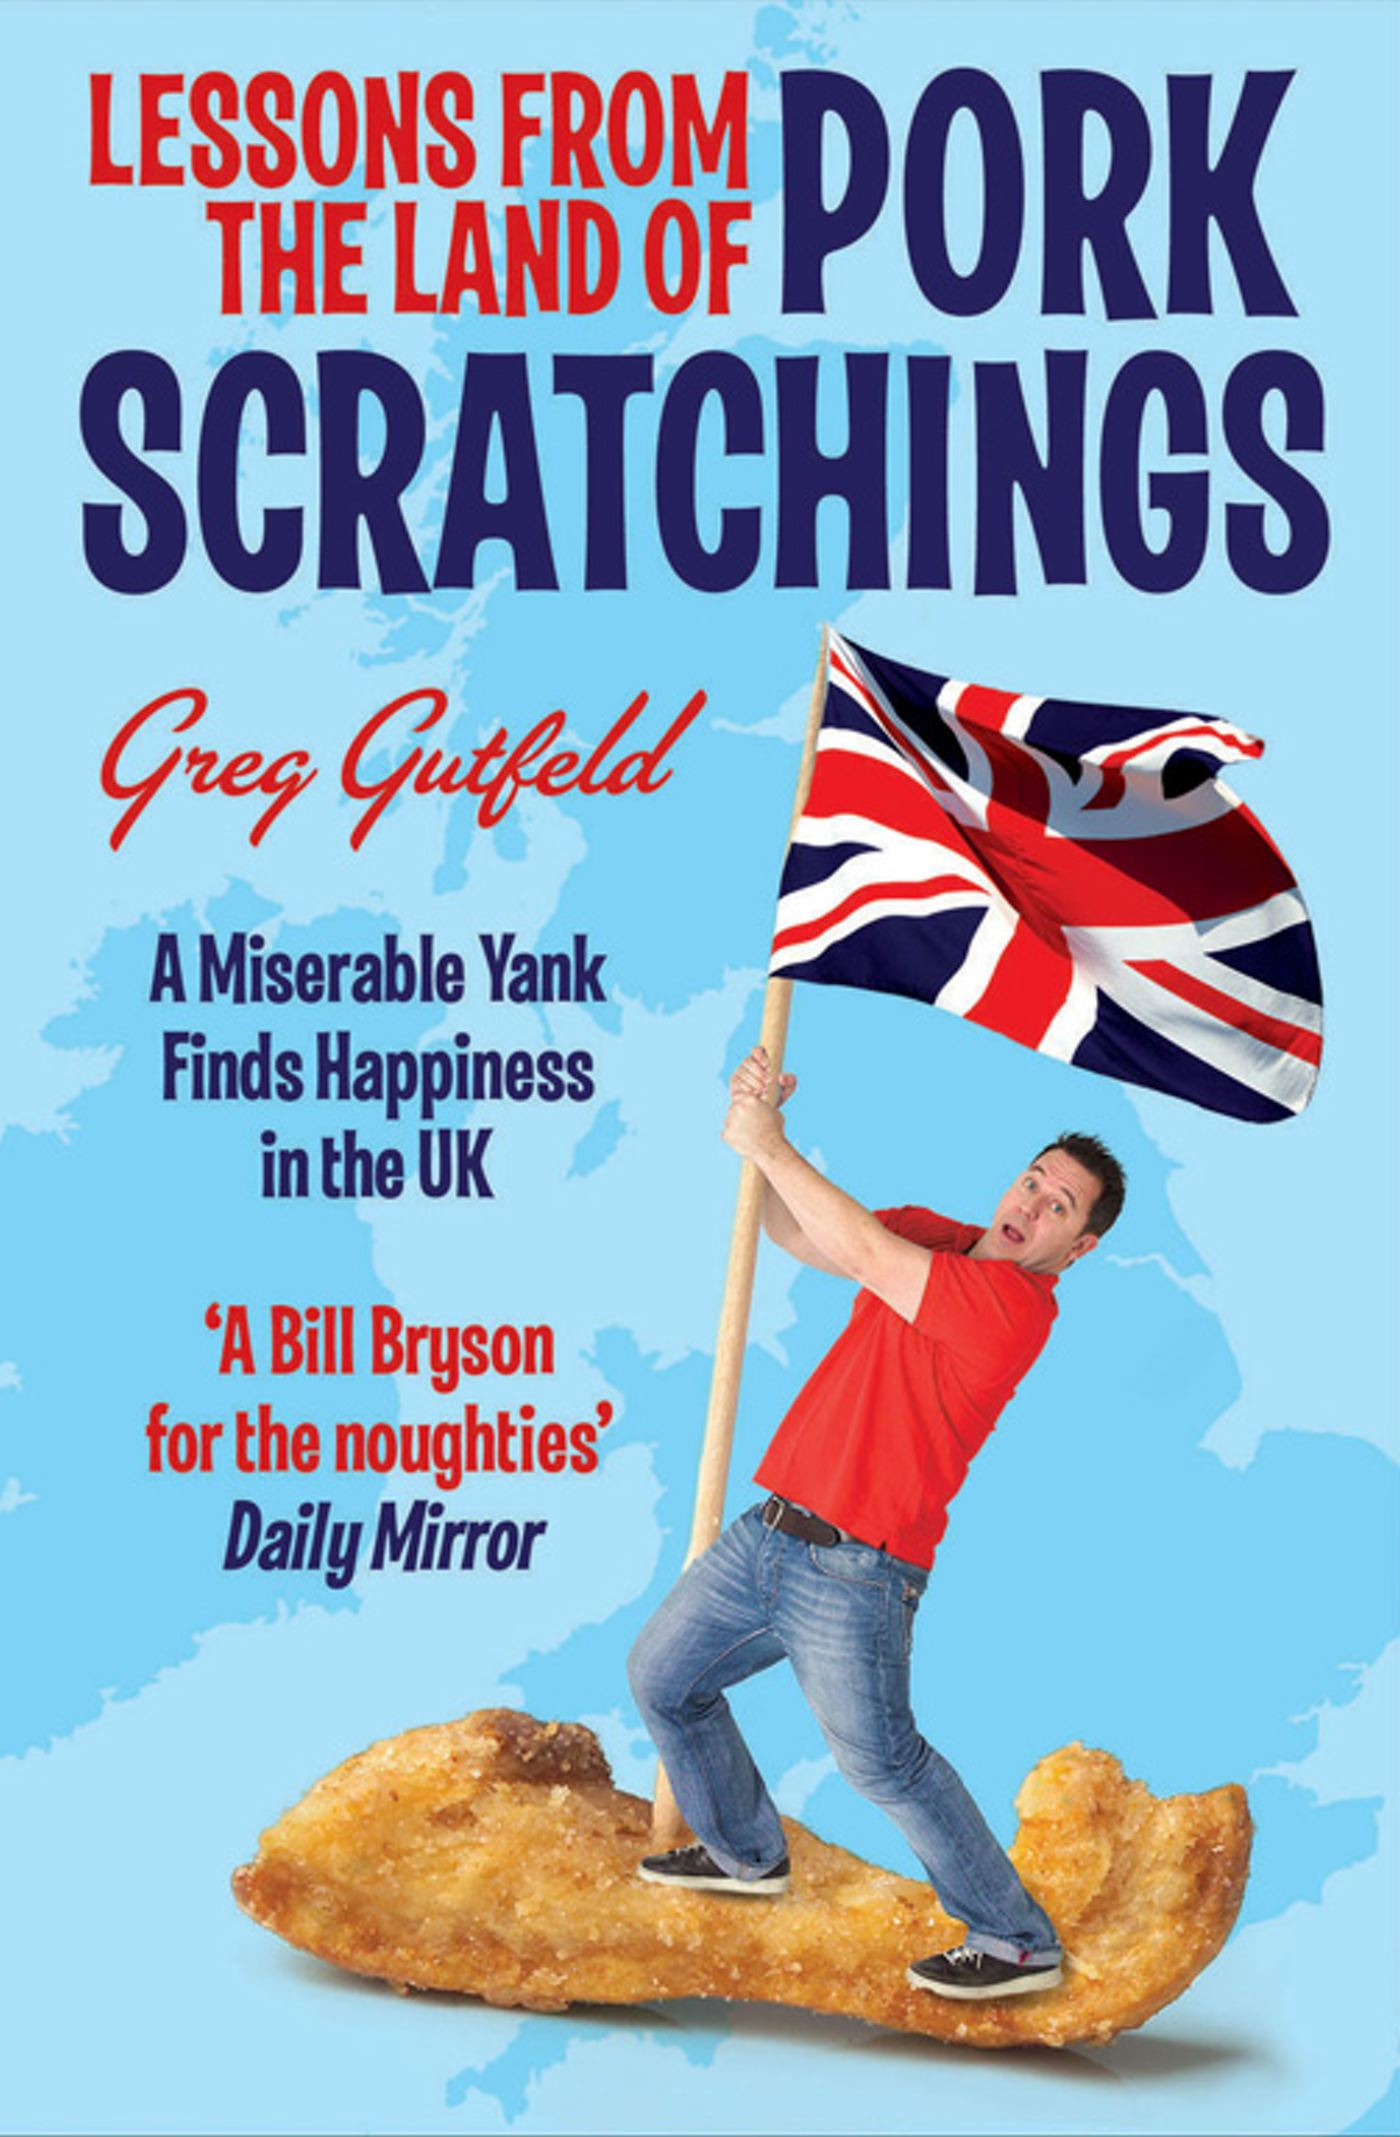 Lessons from the Land of Pork Scratchings A Miserable Yank Finds Happiness in the UK